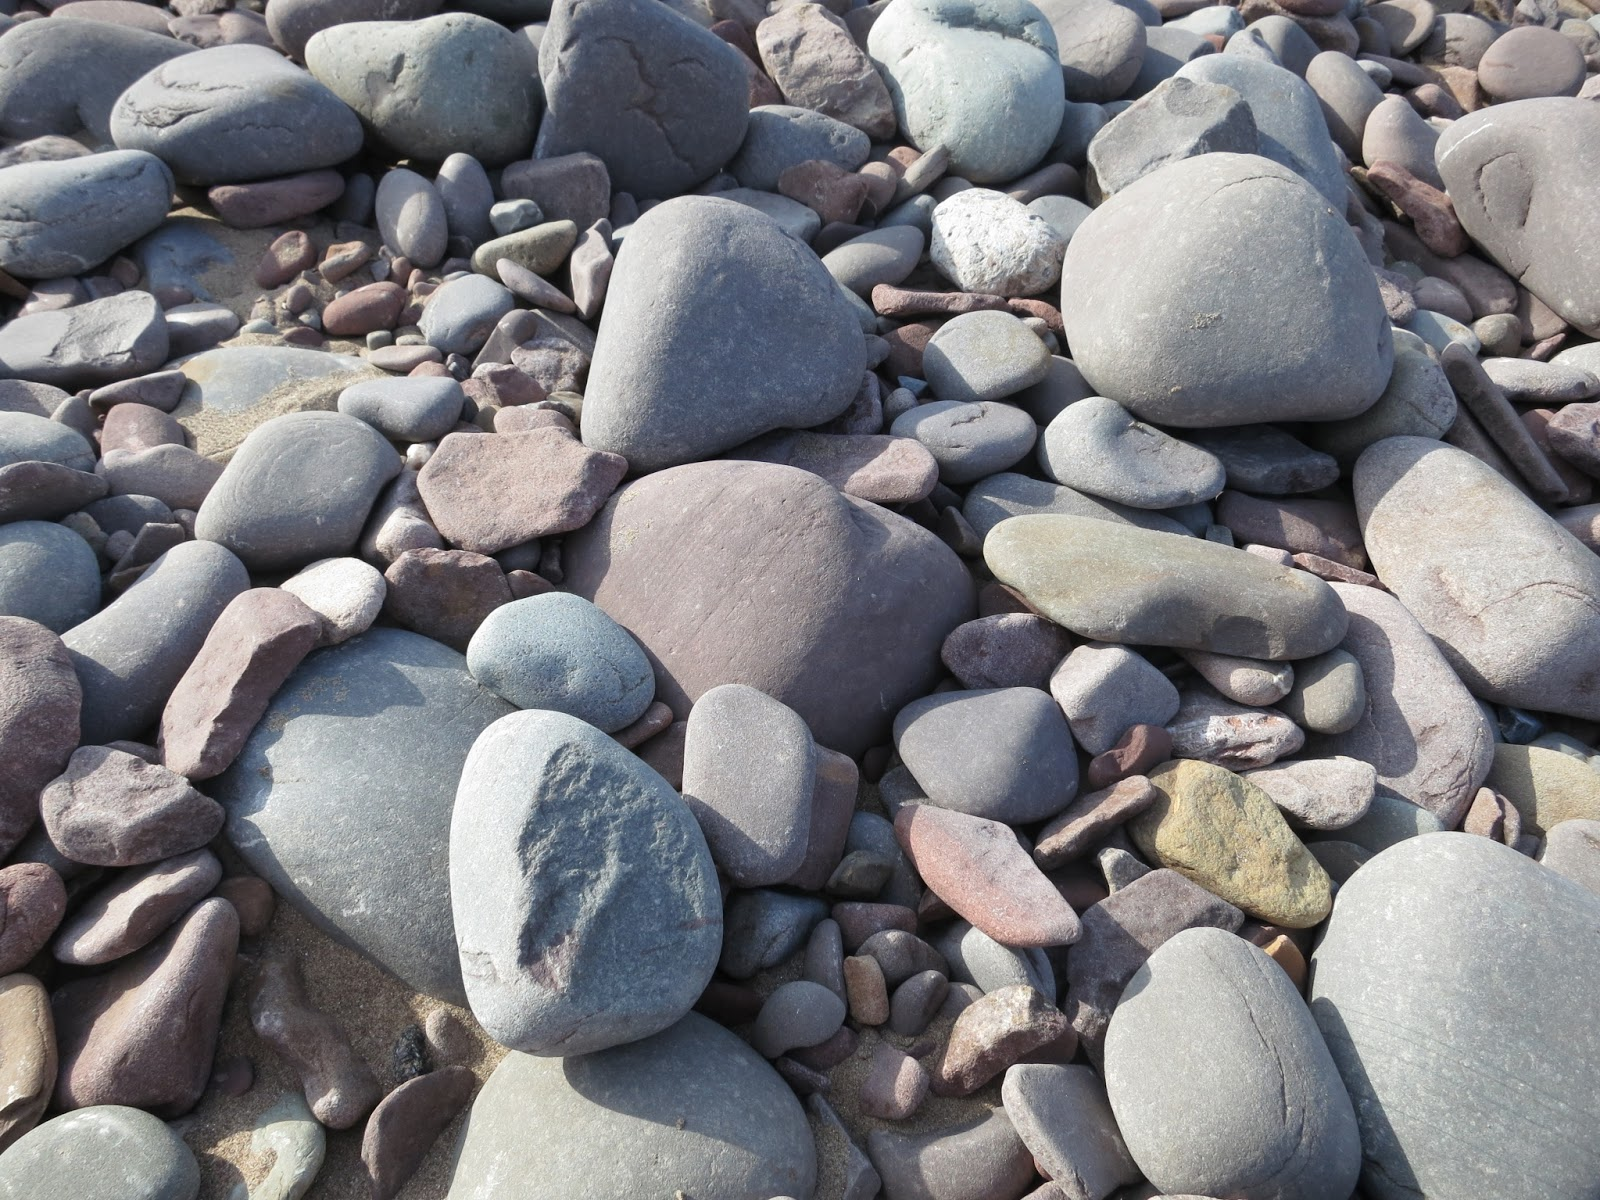 Blue, grey and pink pebbles on beach at Minehead, Somerset